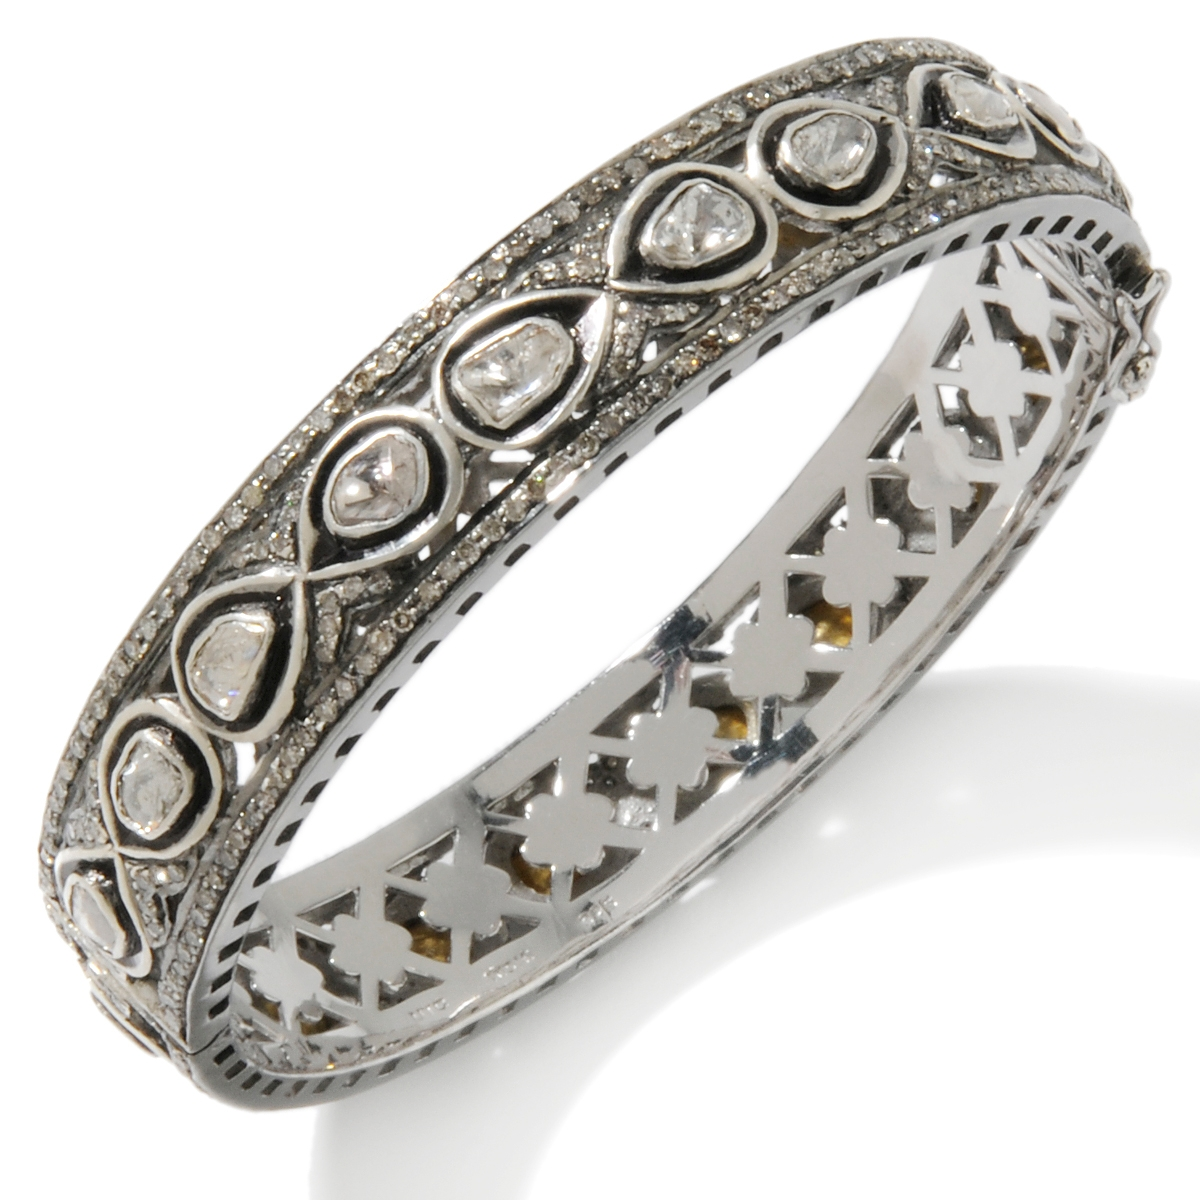 hsn jewelry designer carol brodie tell us about her first anniversary show later this month and what happens when j lo and hilary swank want the same pieces hsn wedding rings Carol s